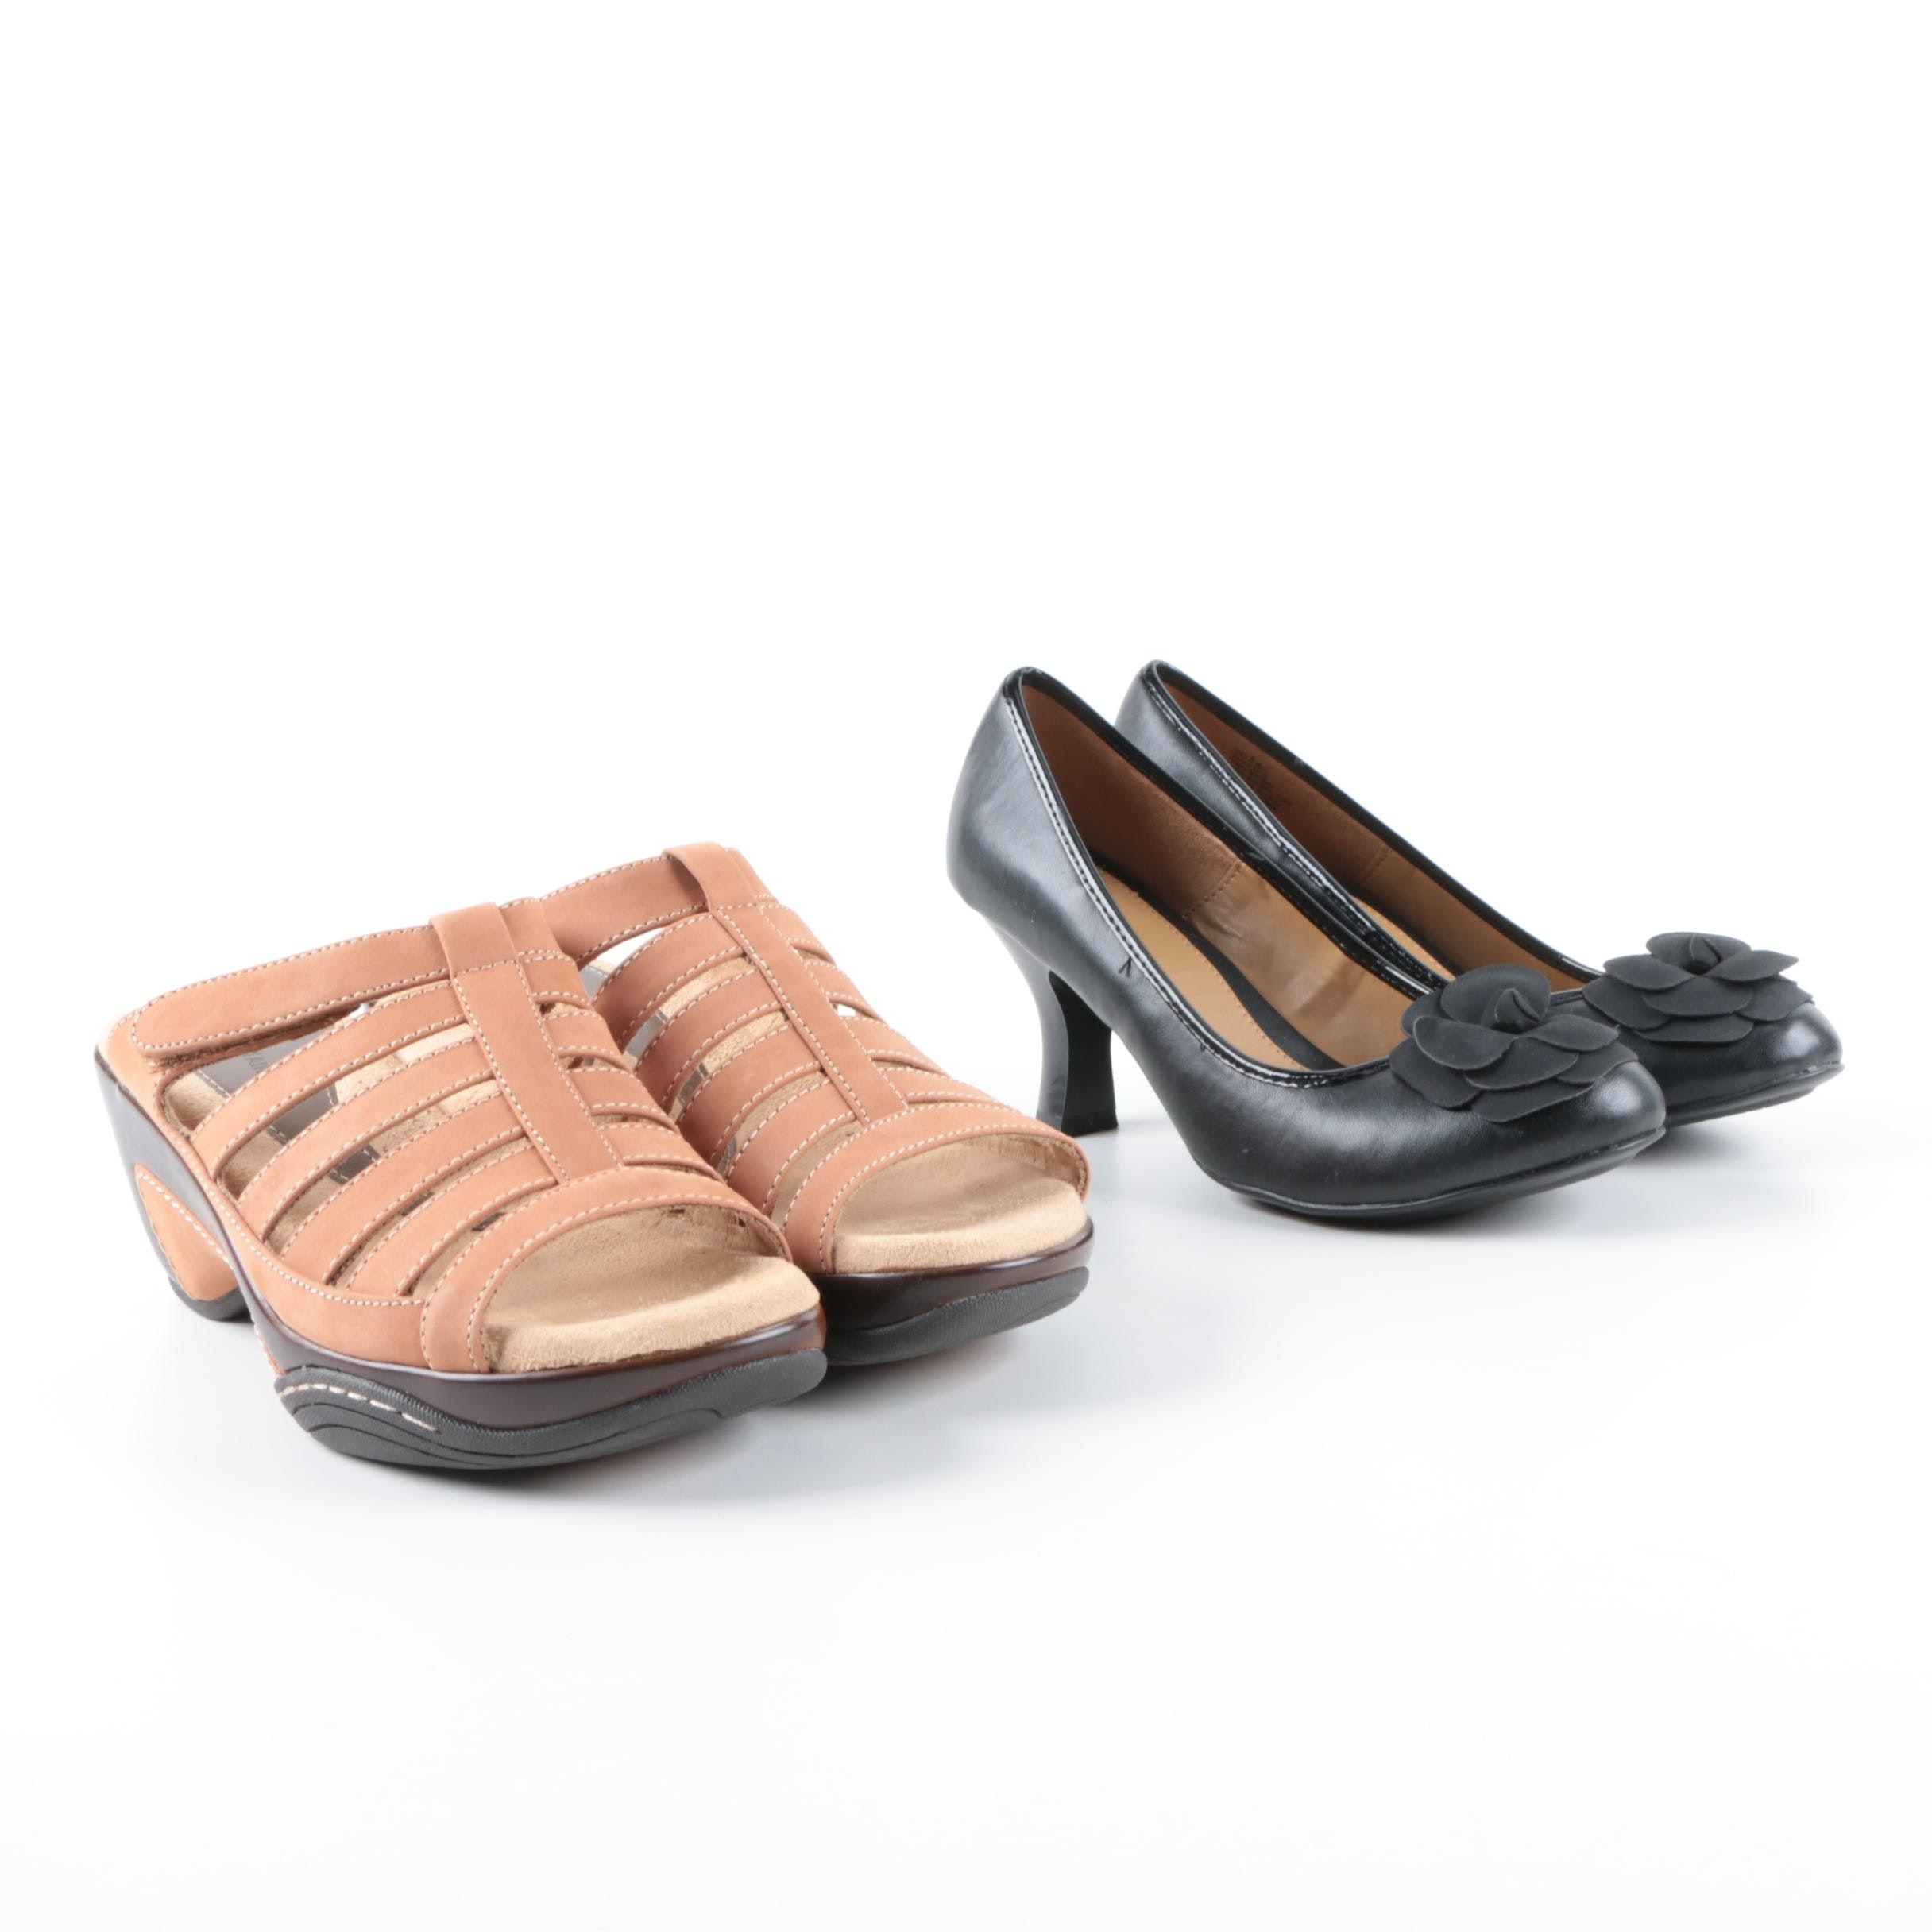 Croft & Barrow Black Pumps and White Mountain Brown Wedges